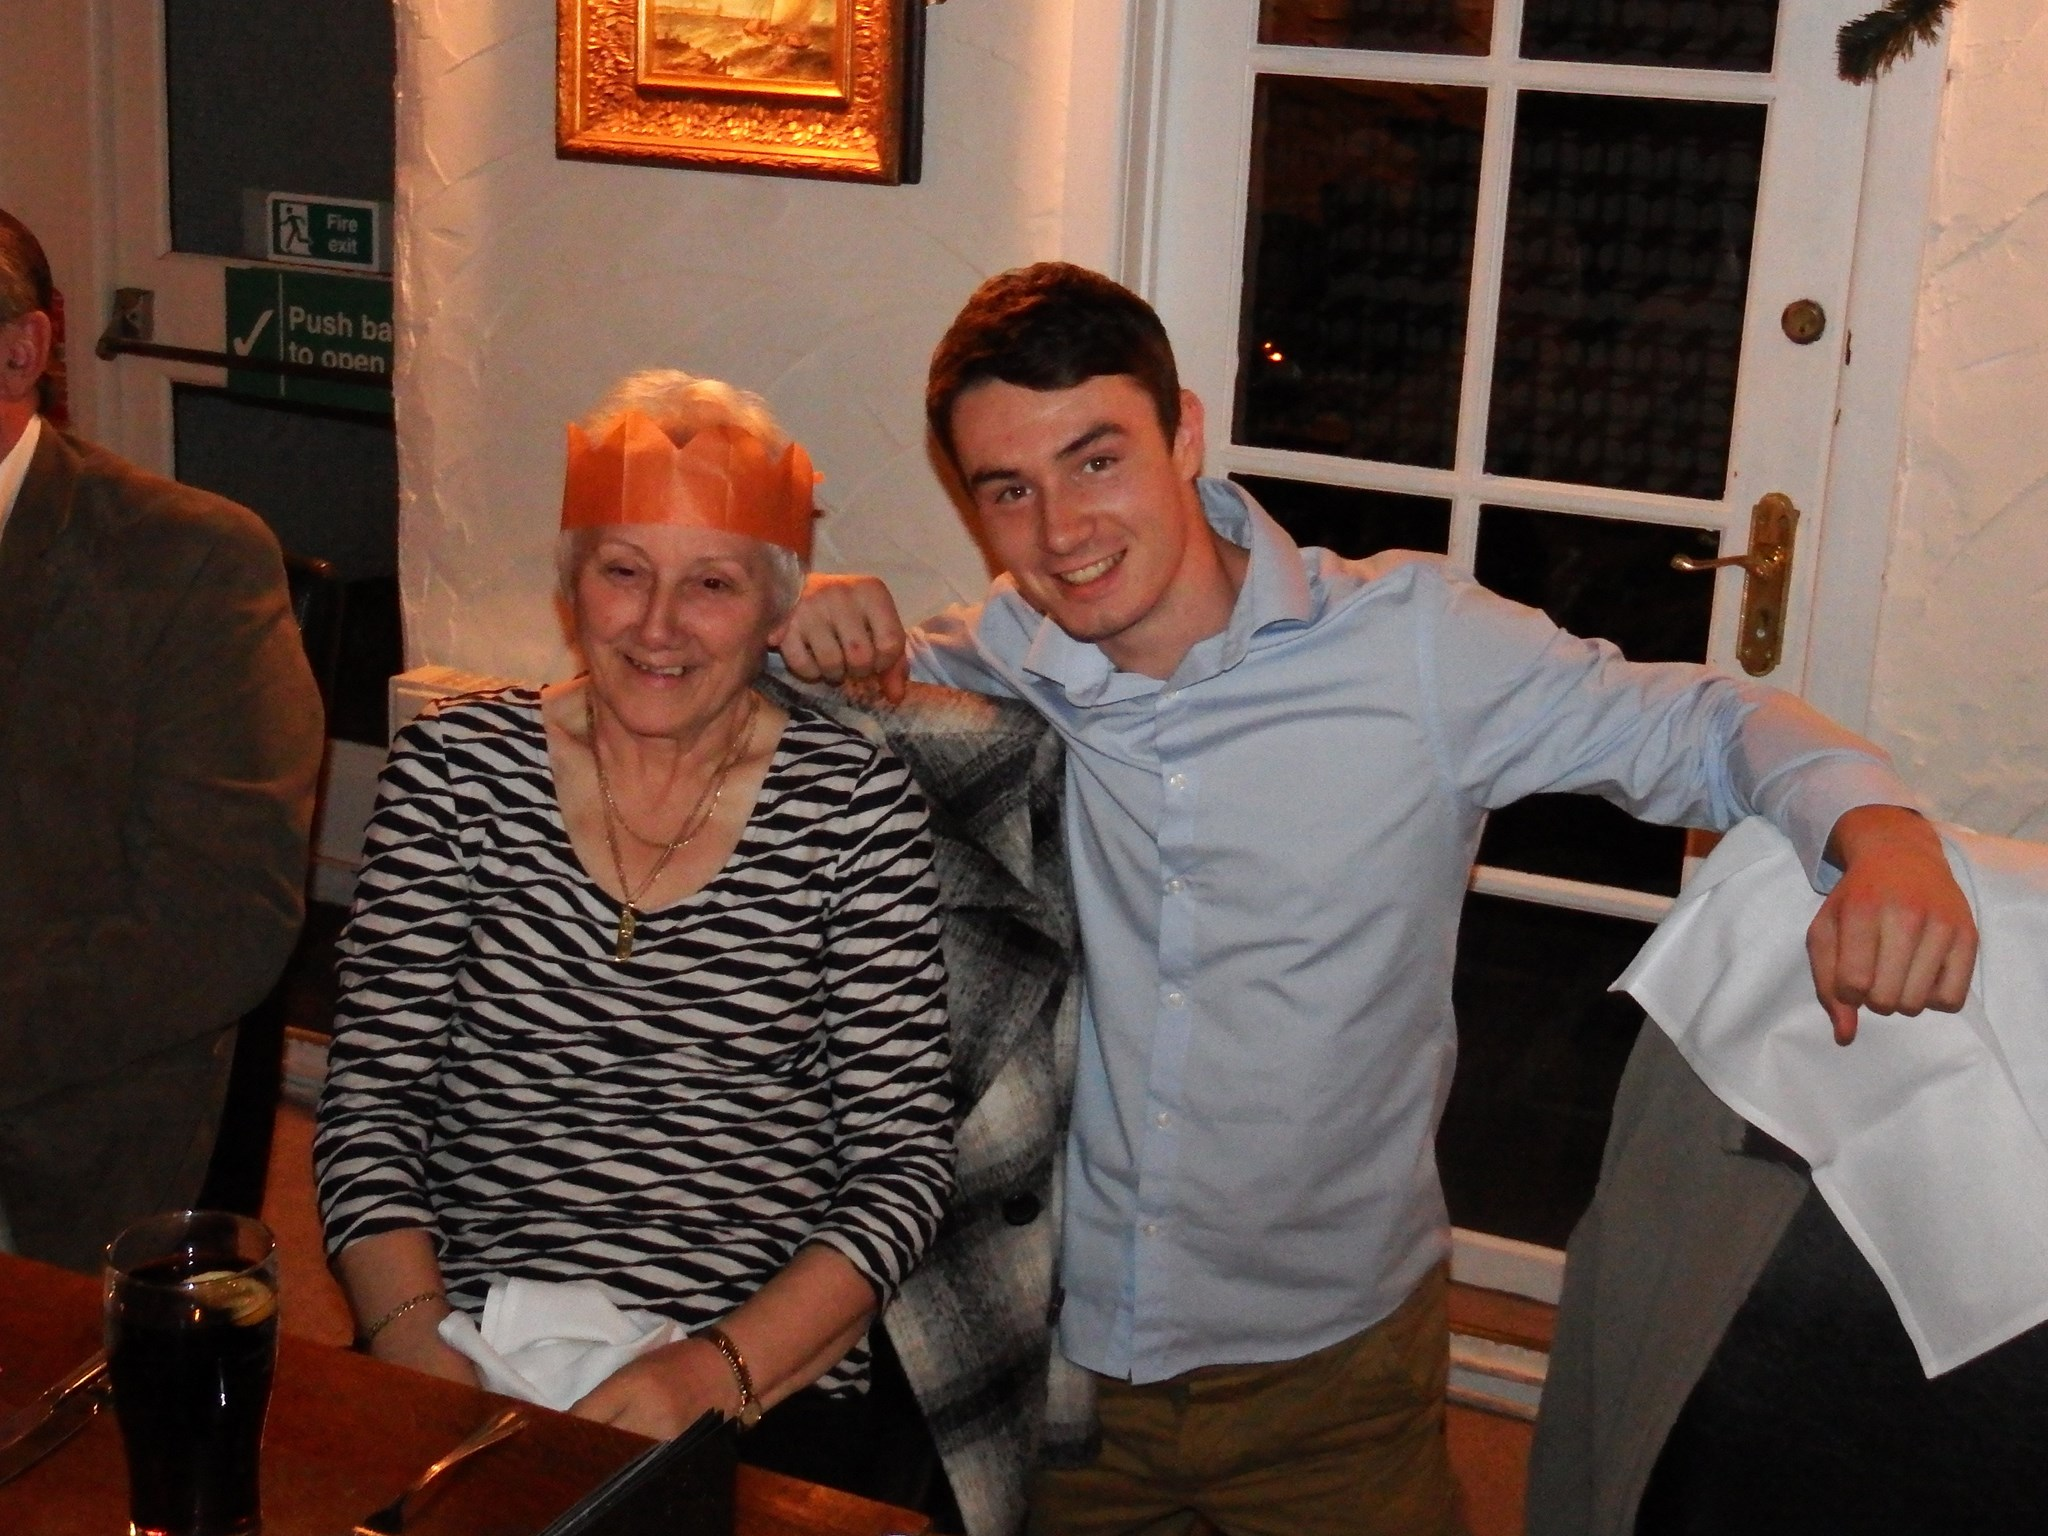 Tom with his Nan on her 70th birthday, December 2014.